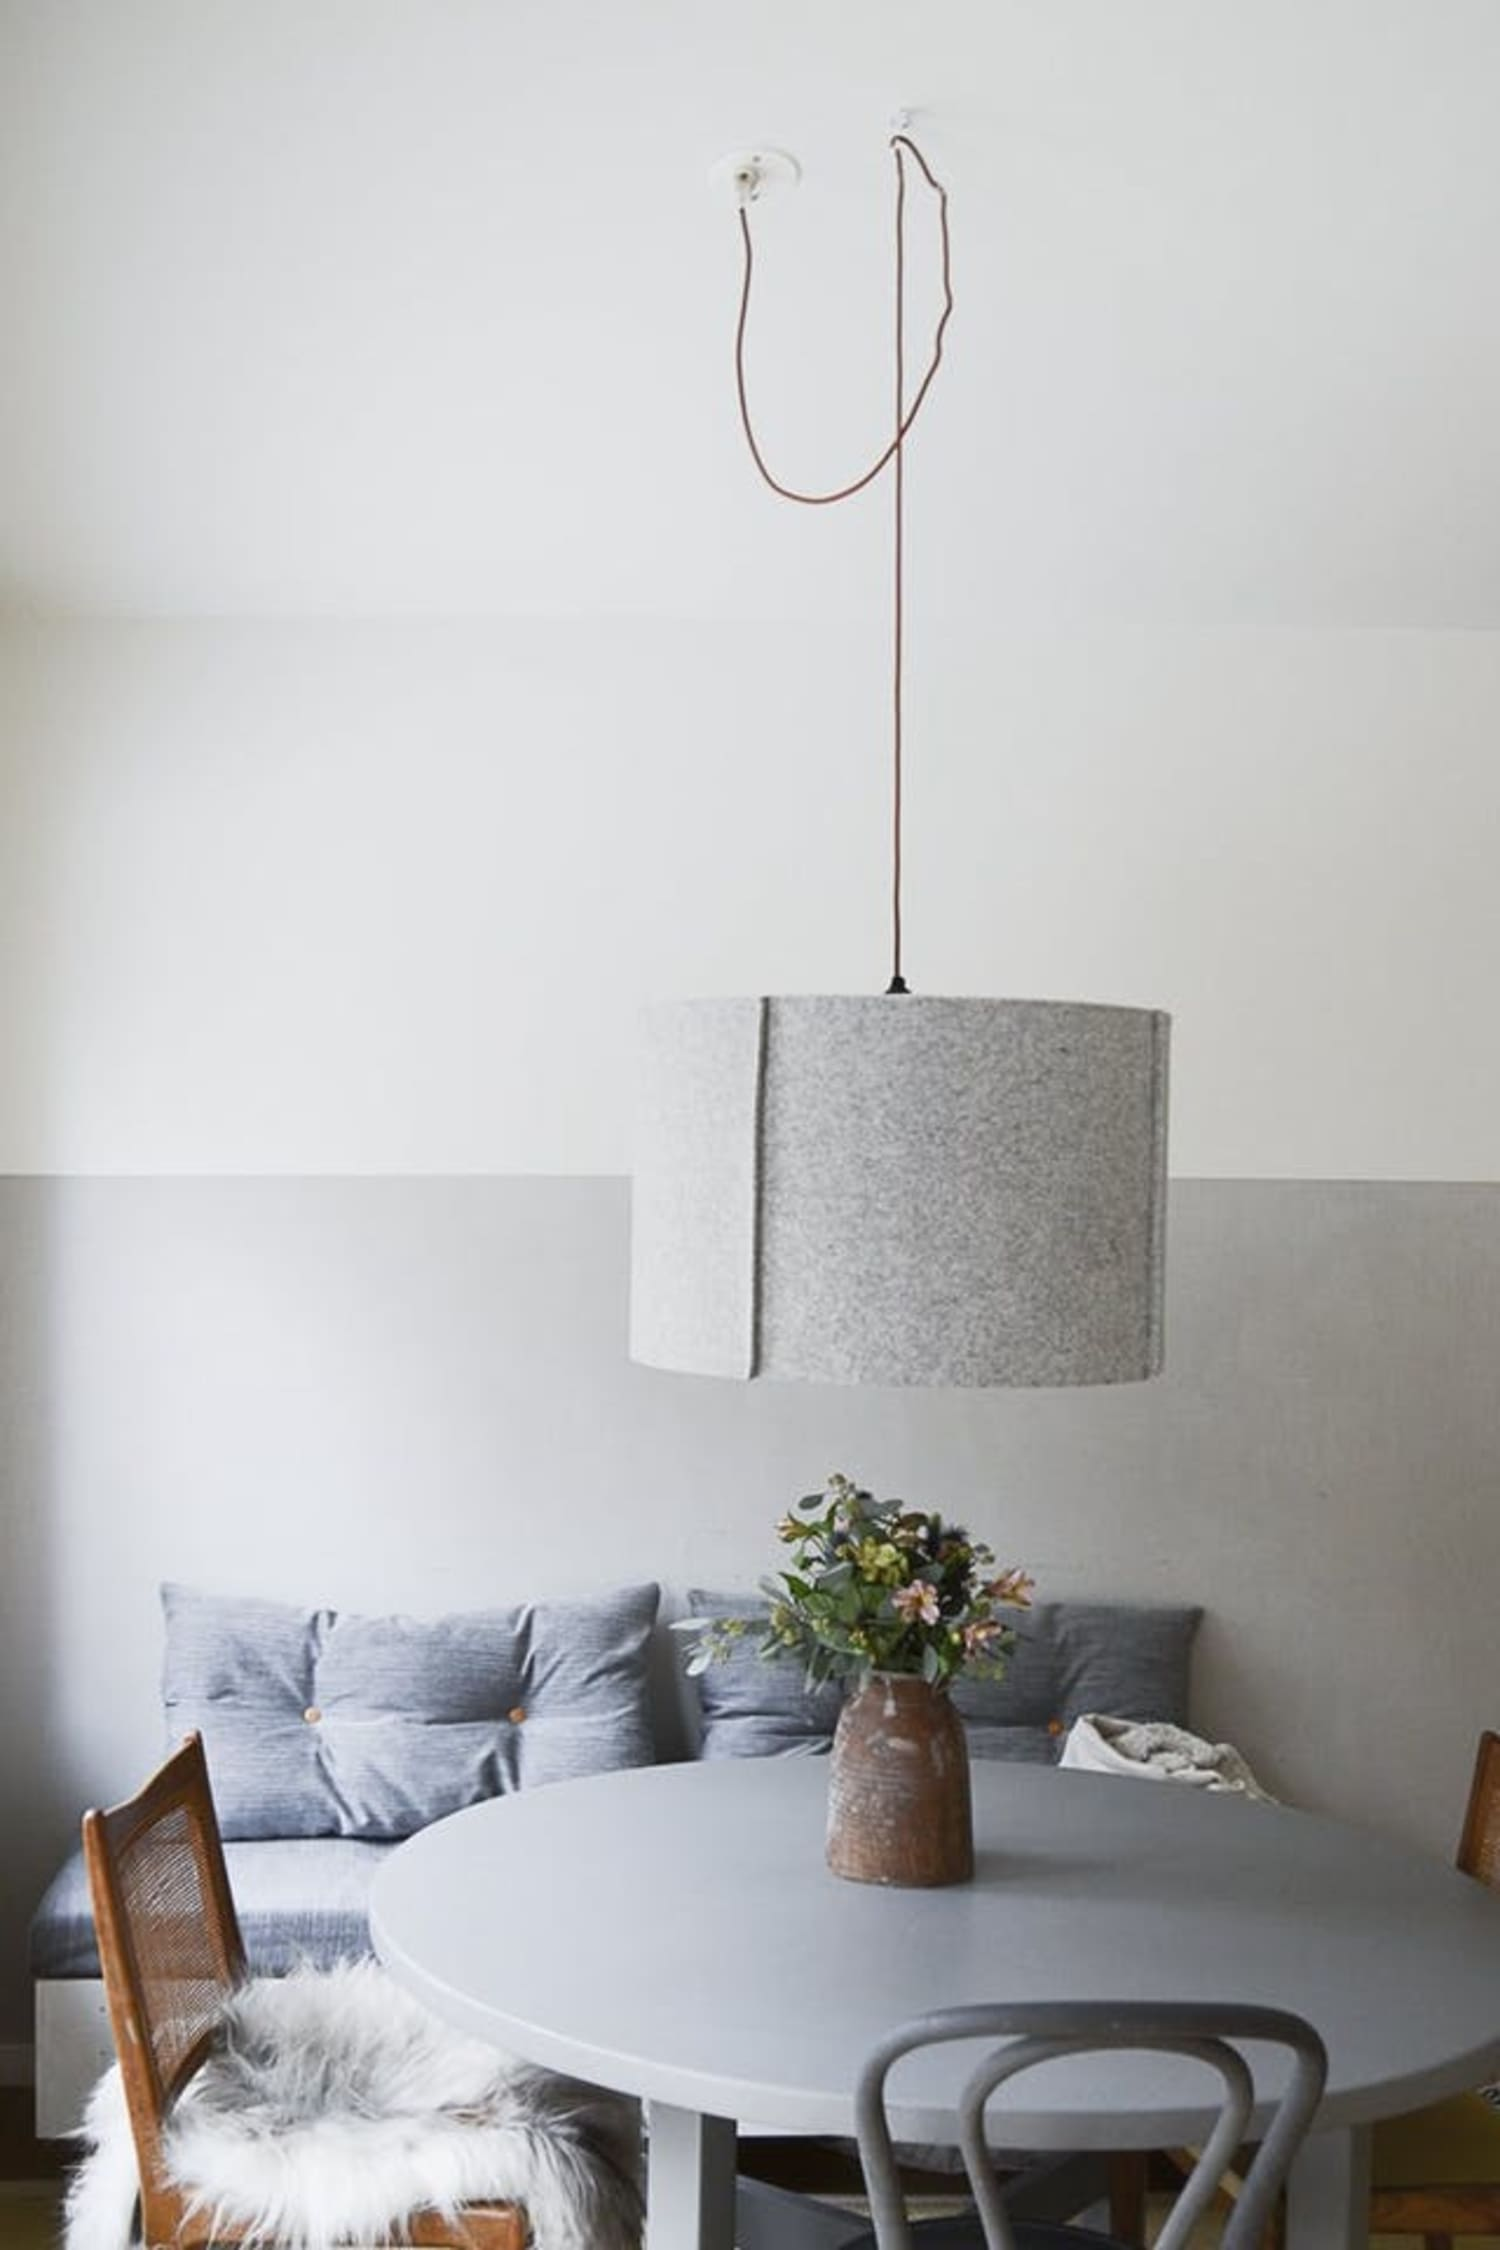 How To Light Up Boring Lampshades 15 Diy Ideas Apartment